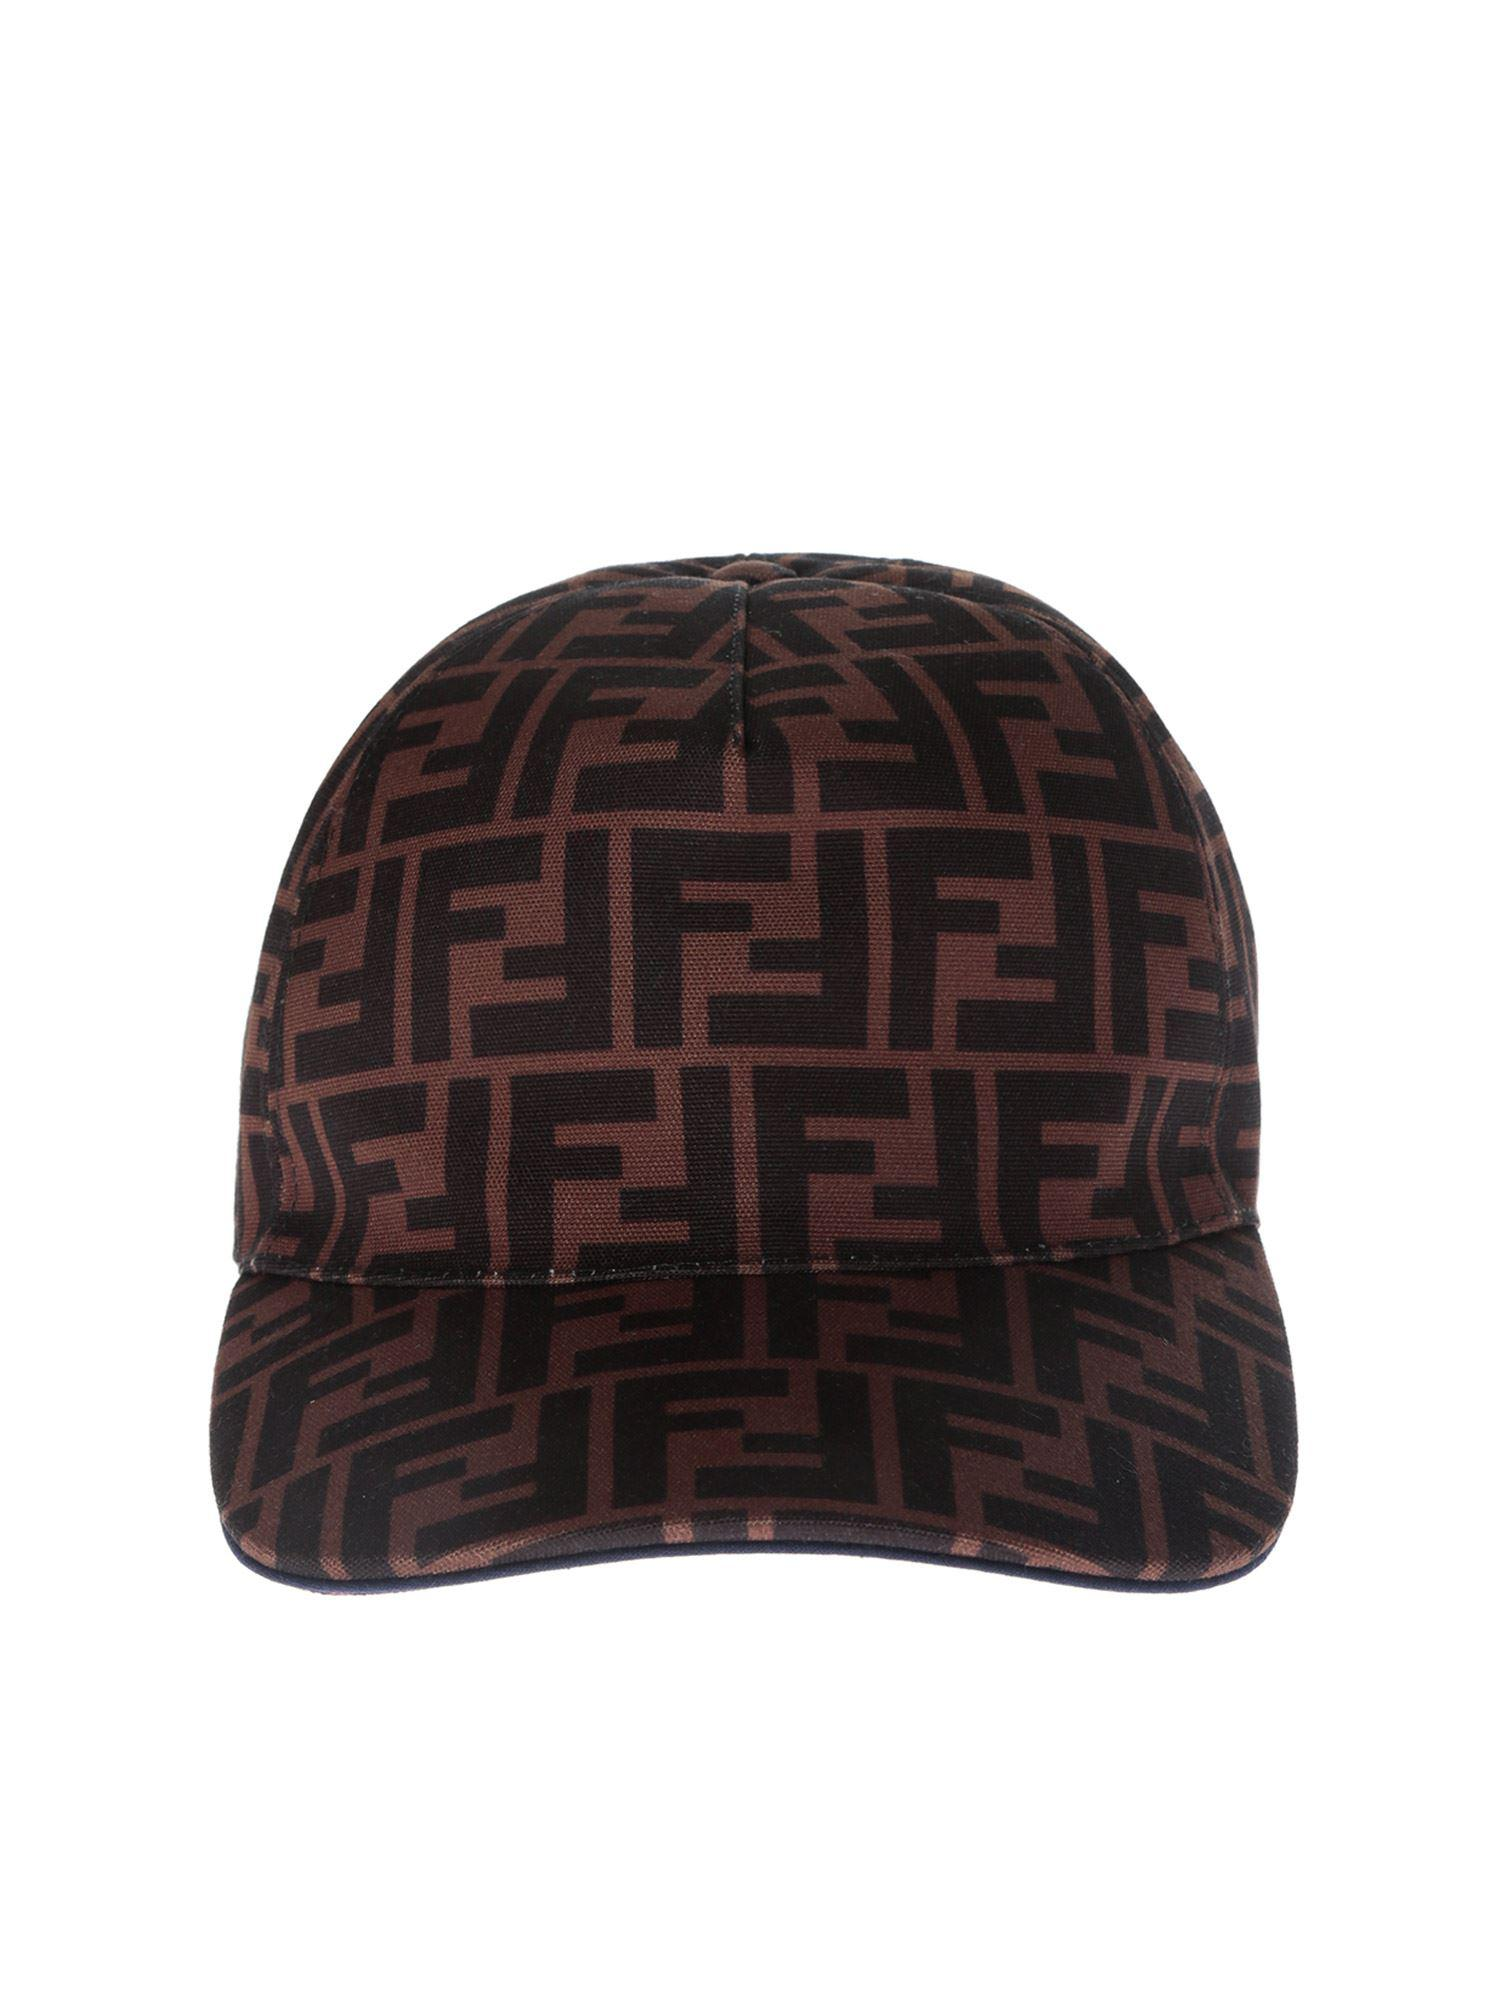 d81453111d2 Fendi Ff Printed Baseball Cap for Men - Lyst